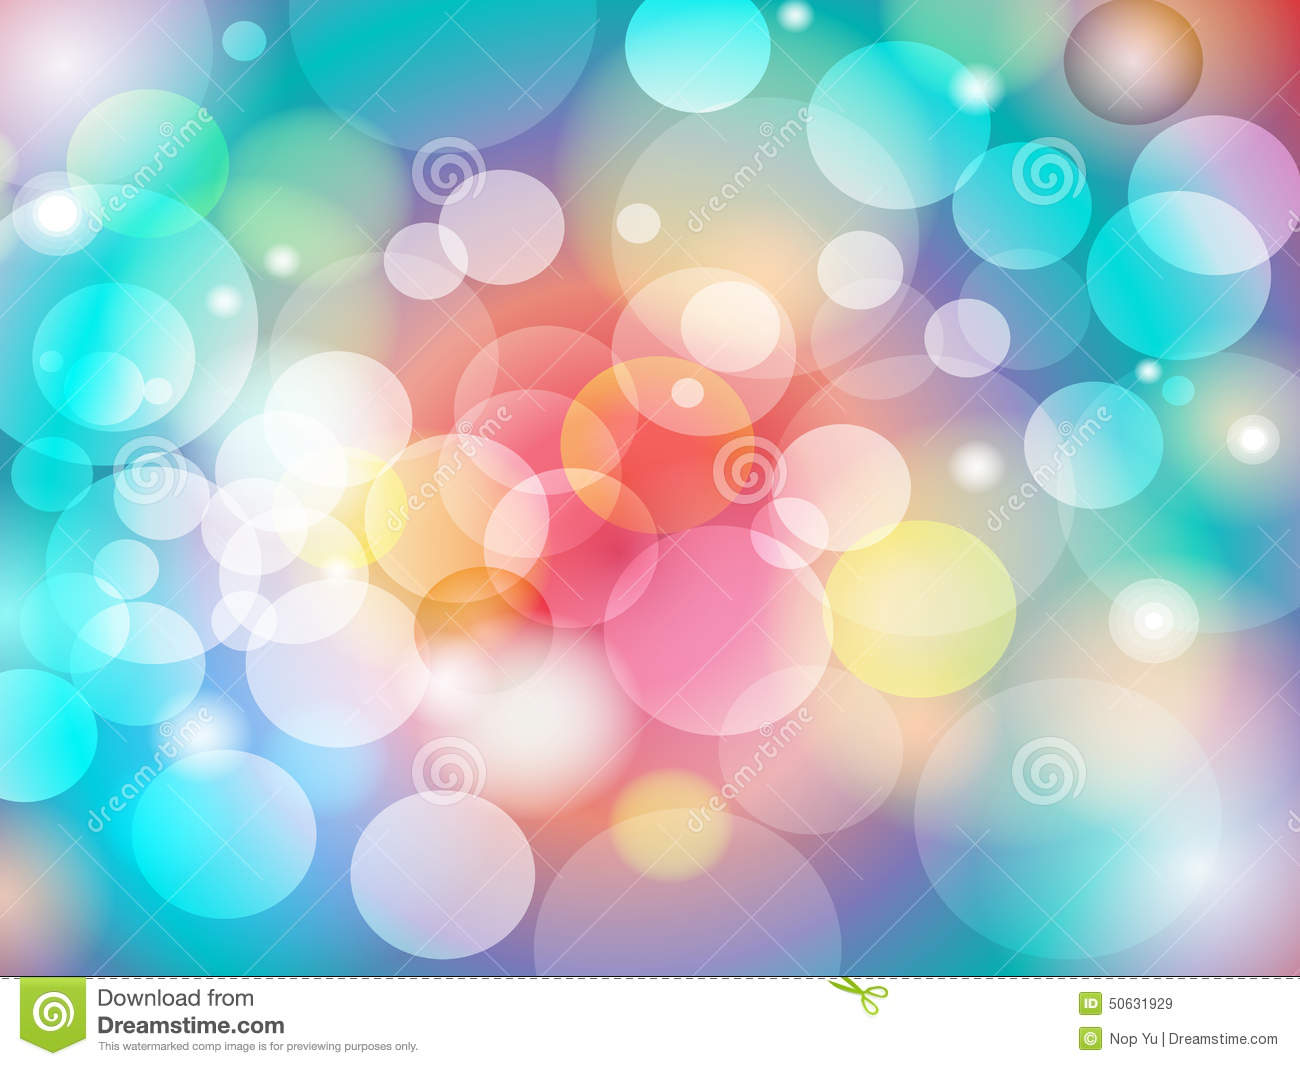 Background image design - Abstract Colorful Blur Bokeh Background Design Royalty Free Stock Images